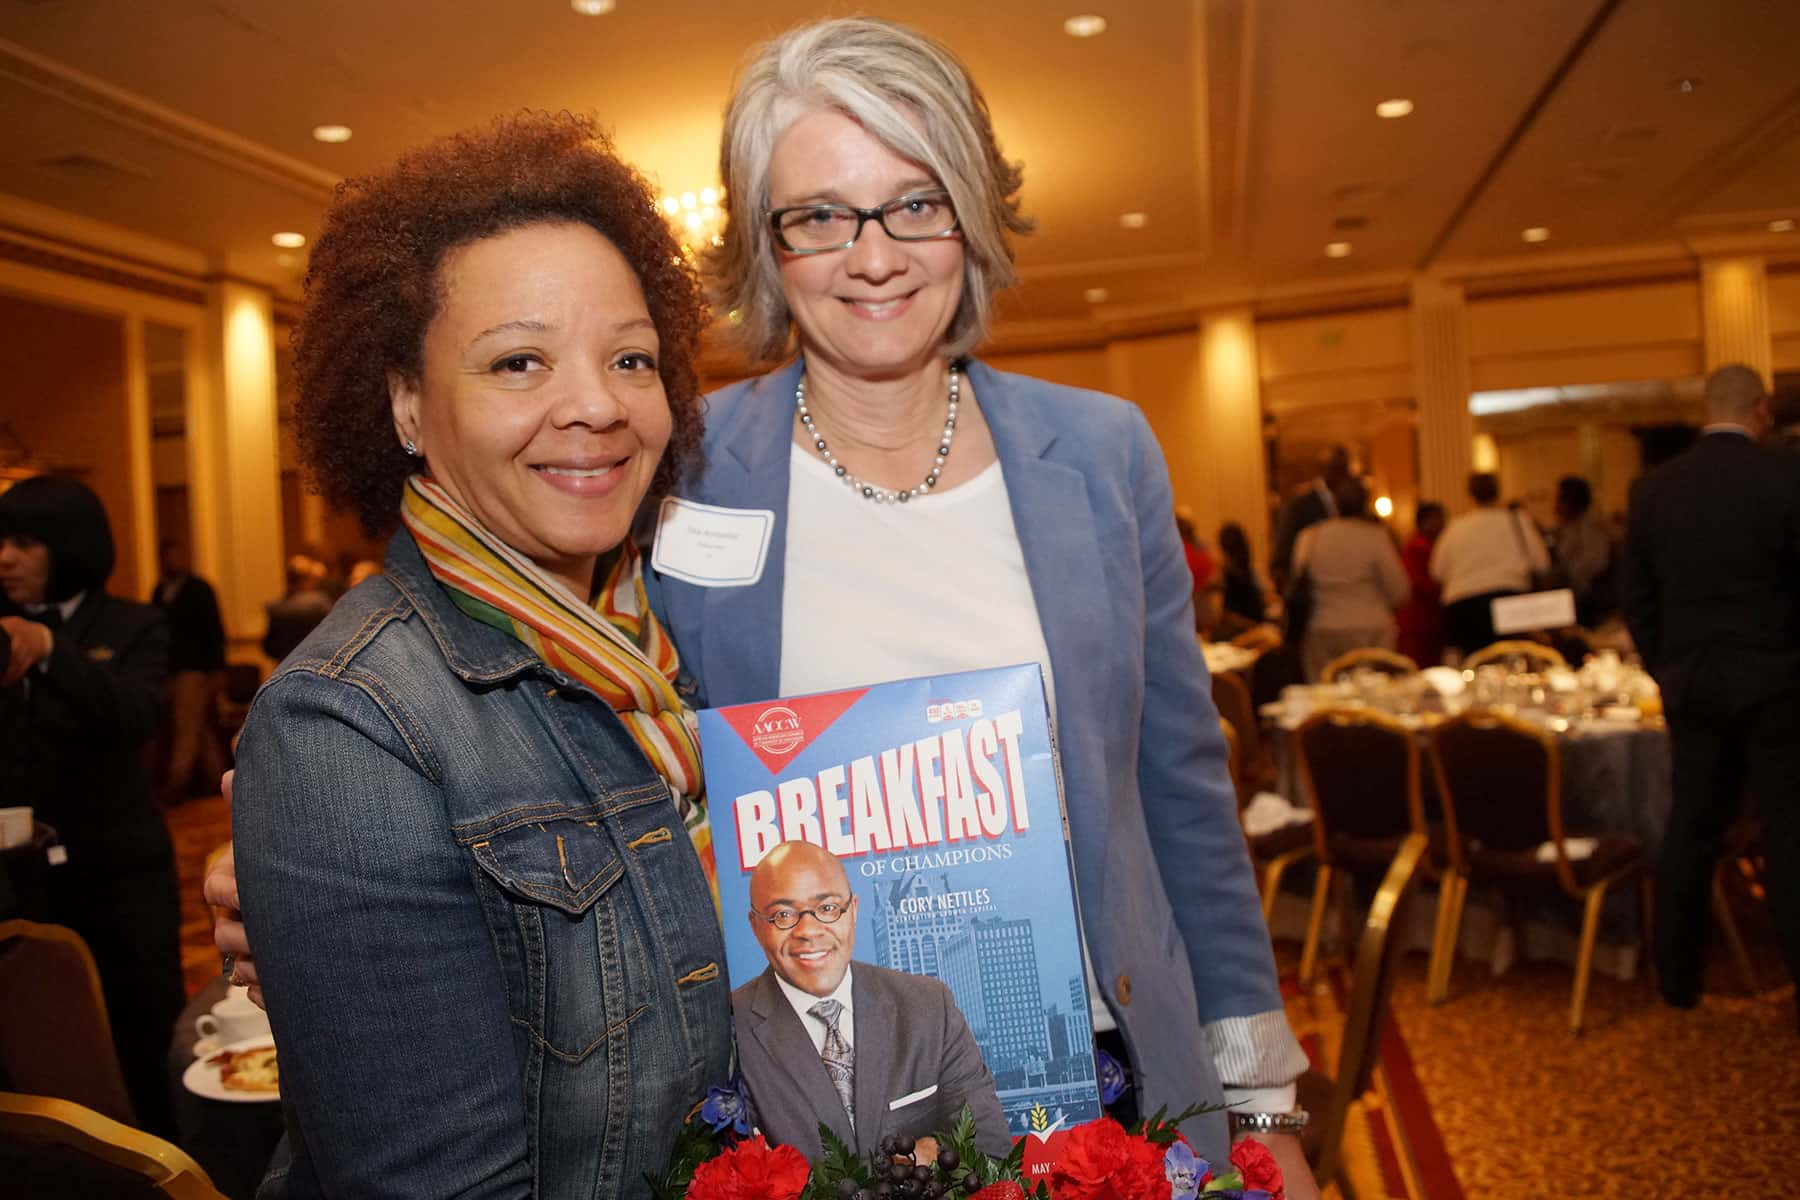 050316_AACC_Breakfast_0929